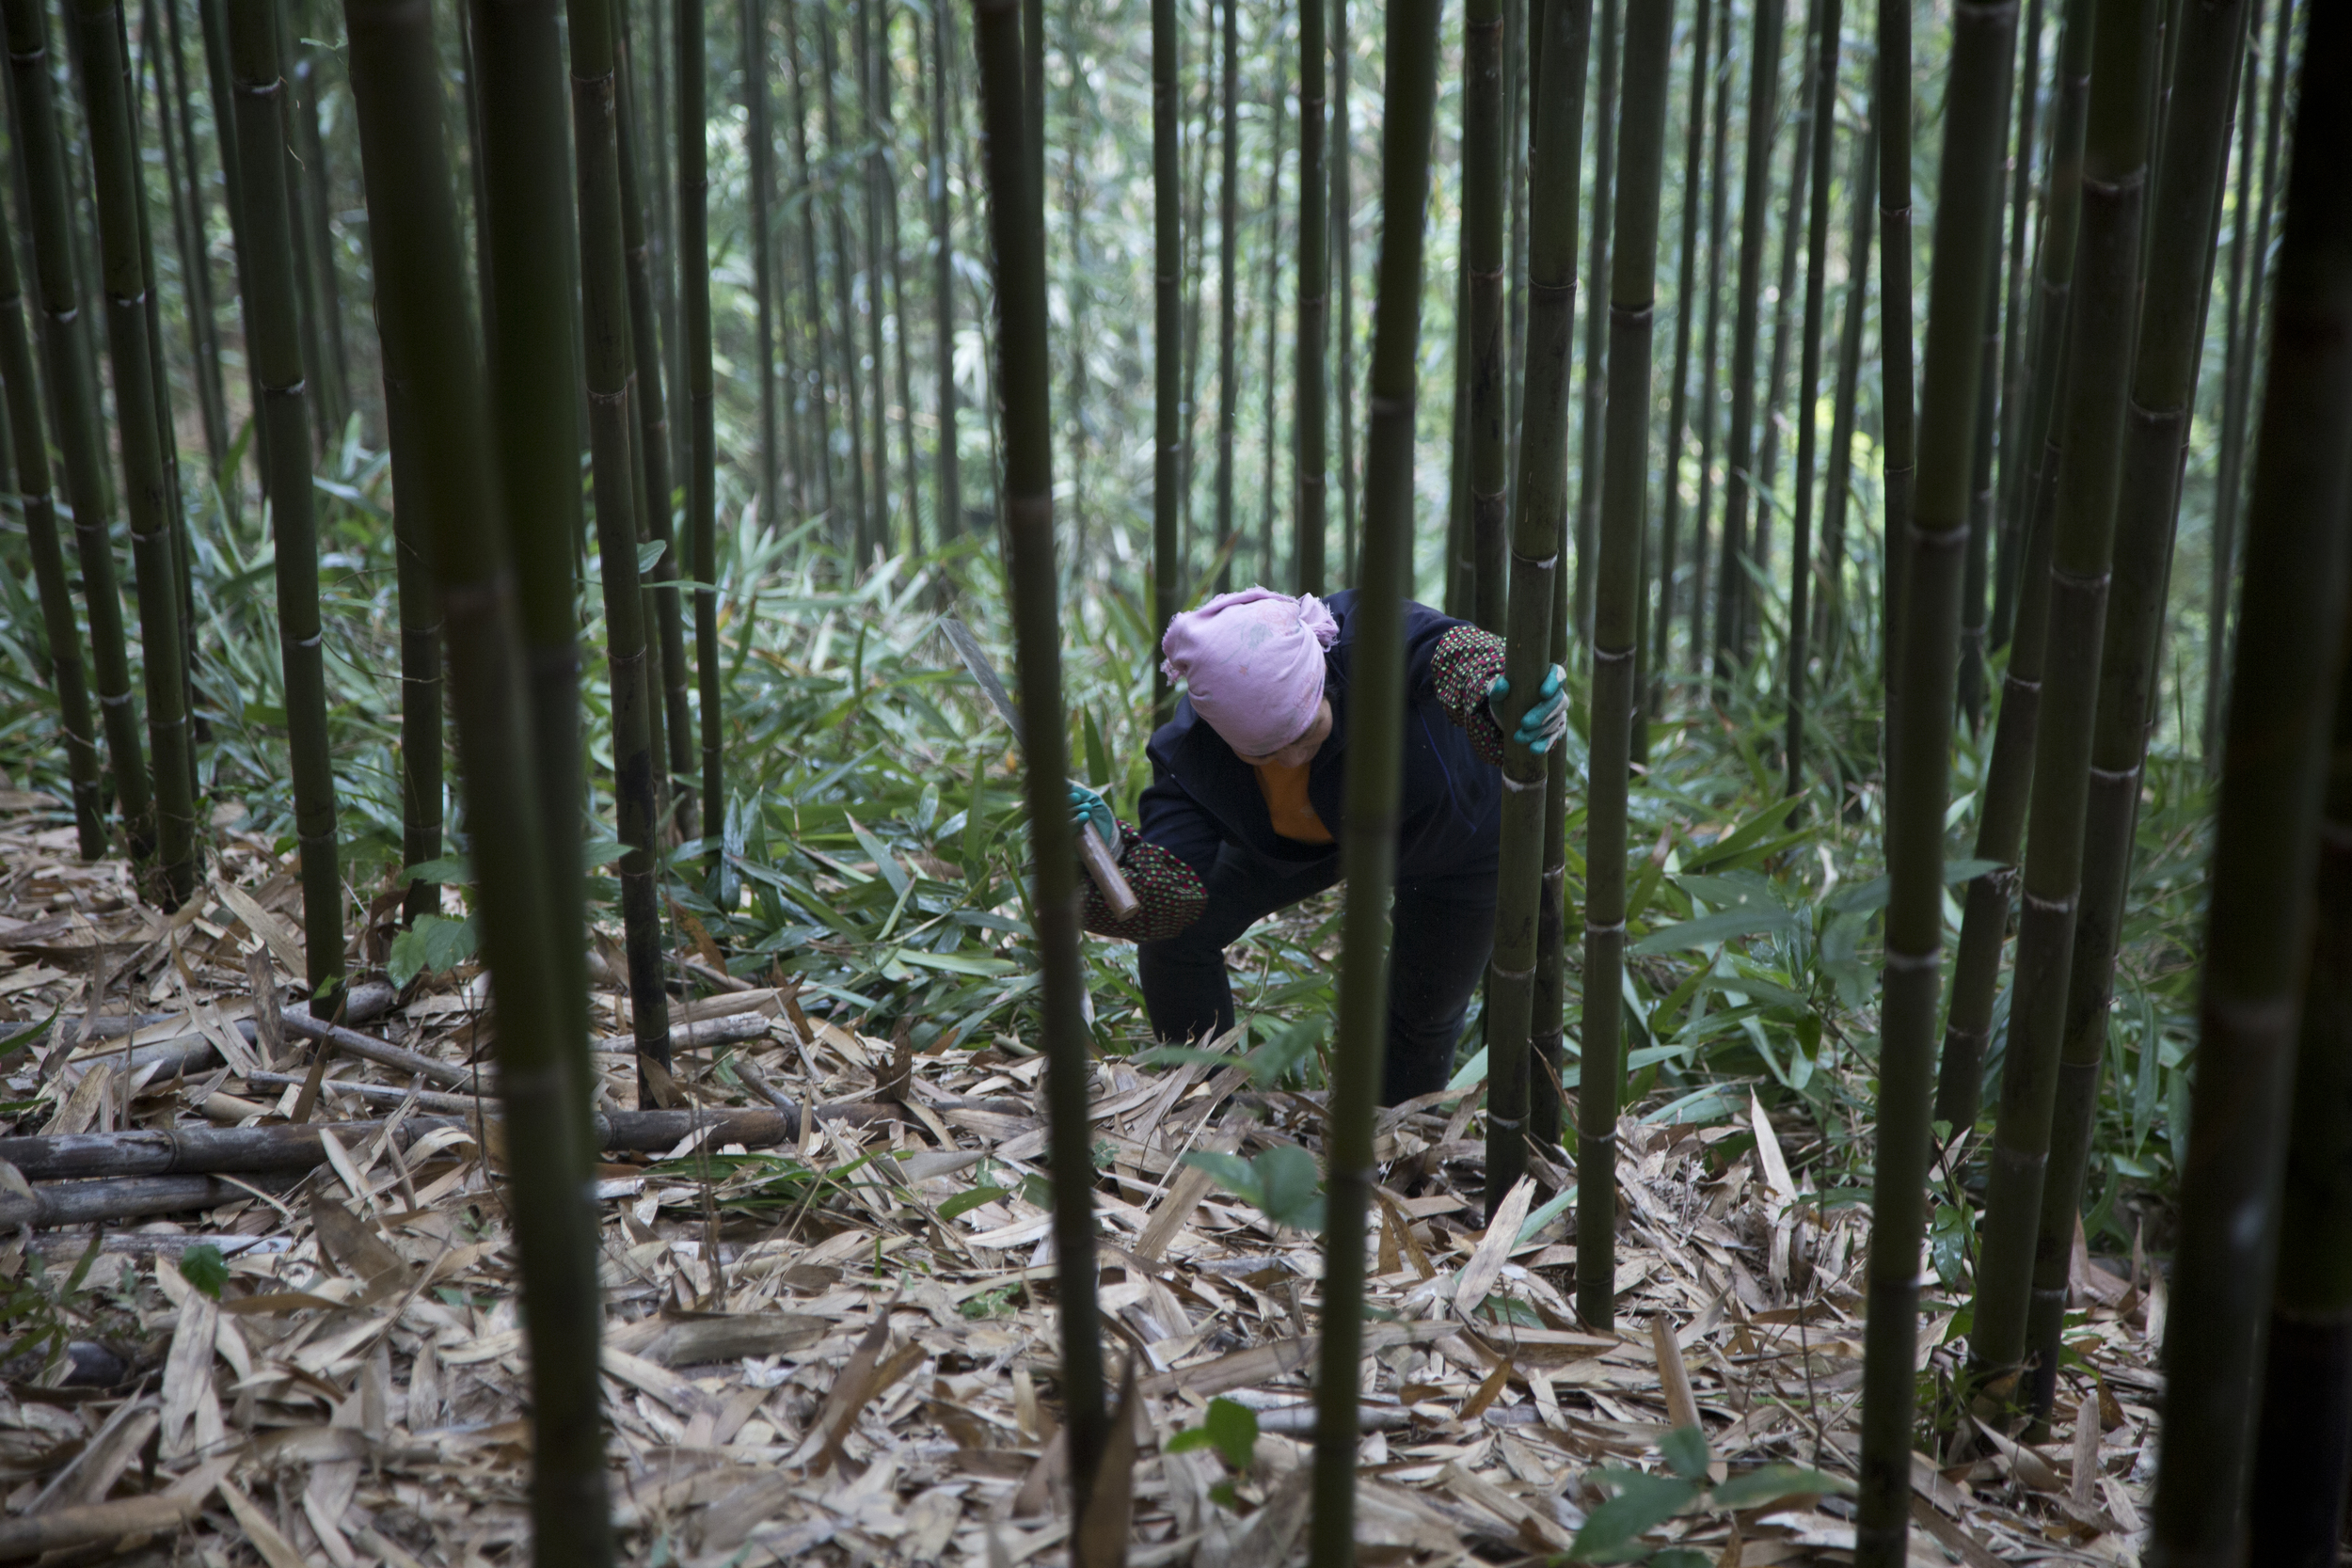 labor_cutting_bamboo.jpg